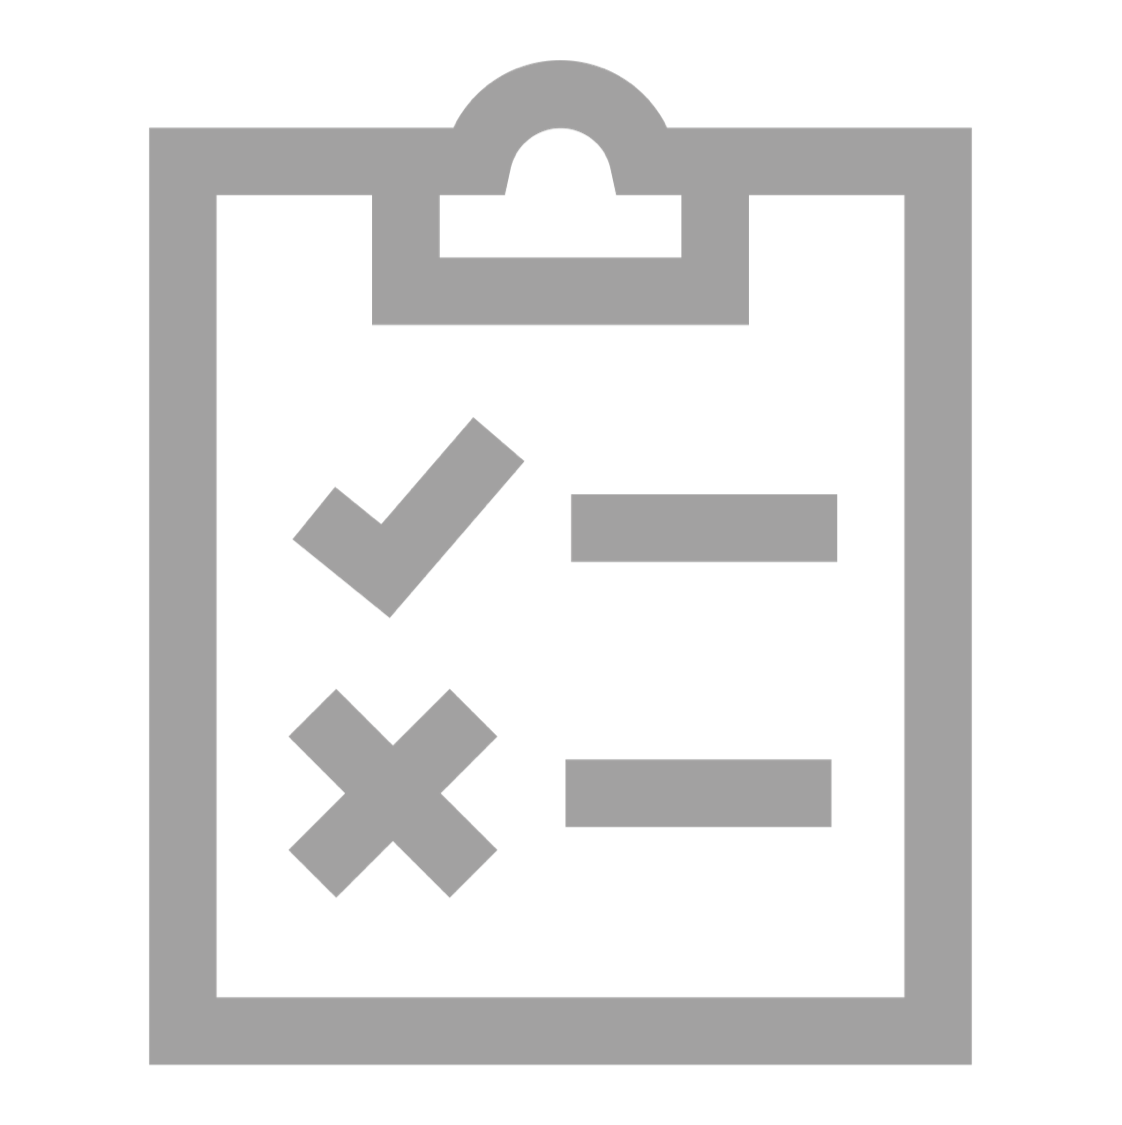 VOTER CHECK-IN icon